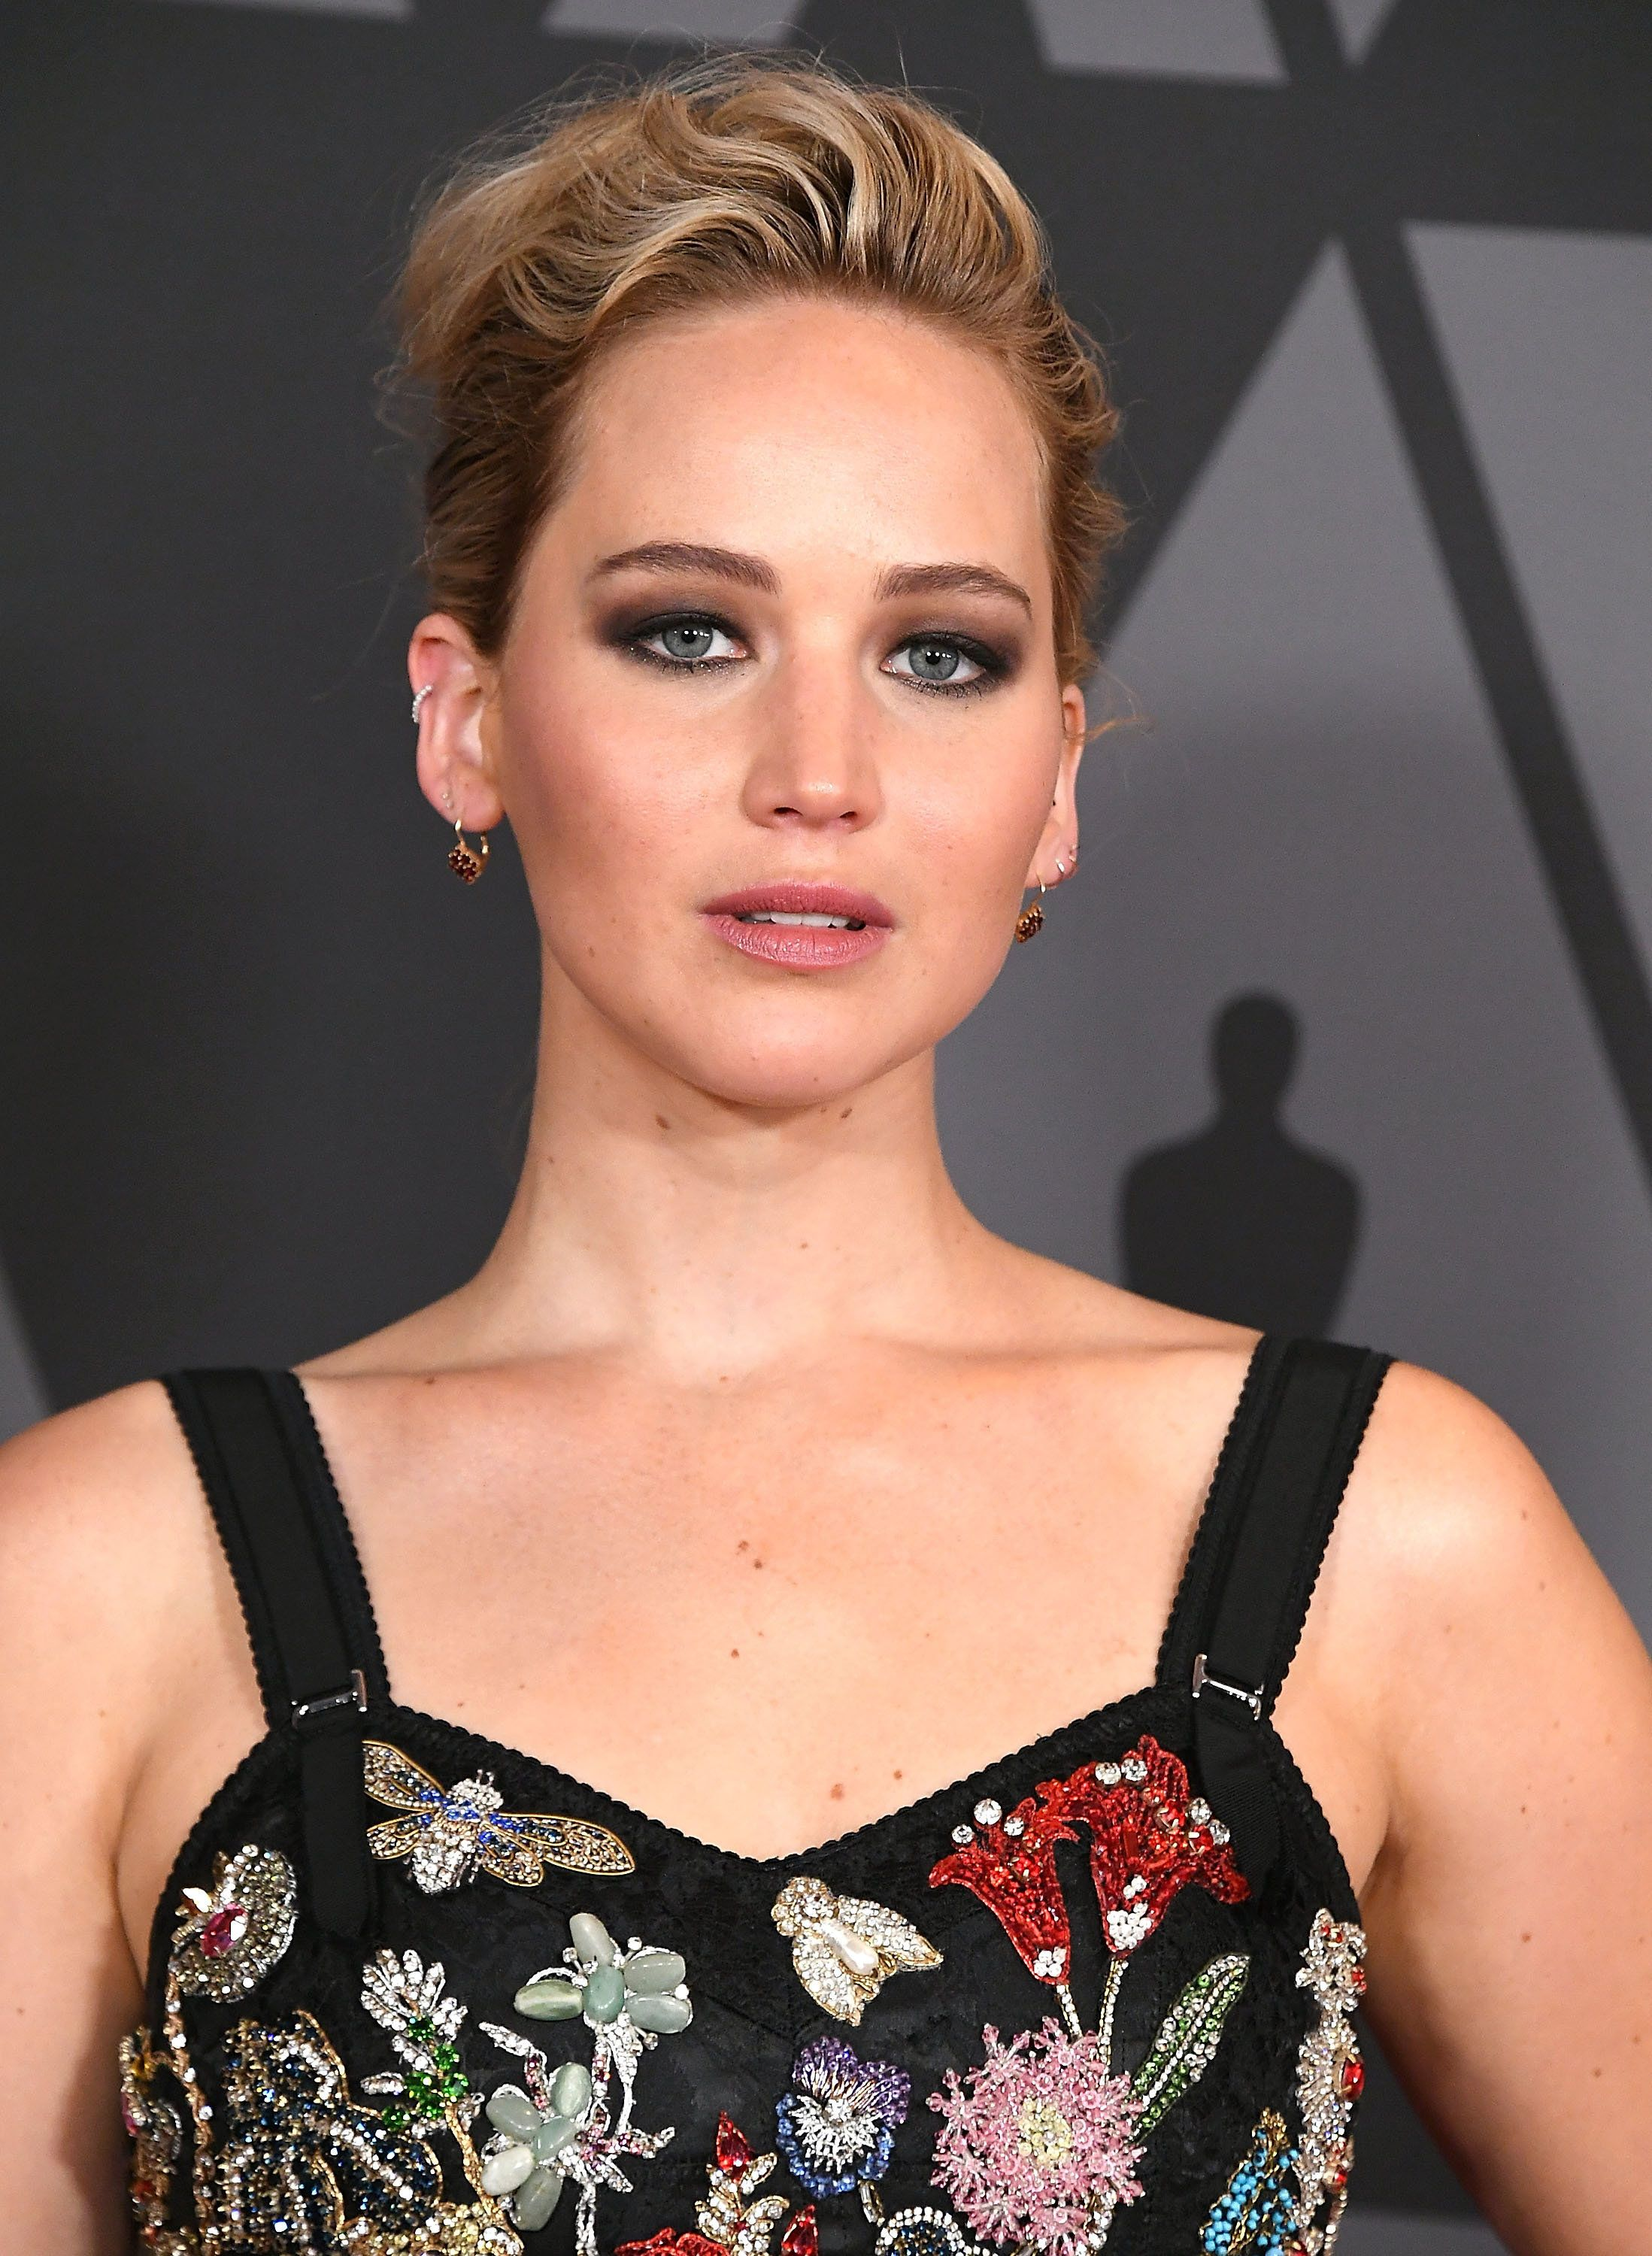 HOLLYWOOD, CA - NOVEMBER 11:  Jennifer Lawrence arrives at the Academy Of Motion Picture Arts And Sciences' 9th Annual Governors Awards at The Ray Dolby Ballroom at Hollywood & Highland Center on November 11, 2017 in Hollywood, California.  (Photo by Steve Granitz/WireImage)